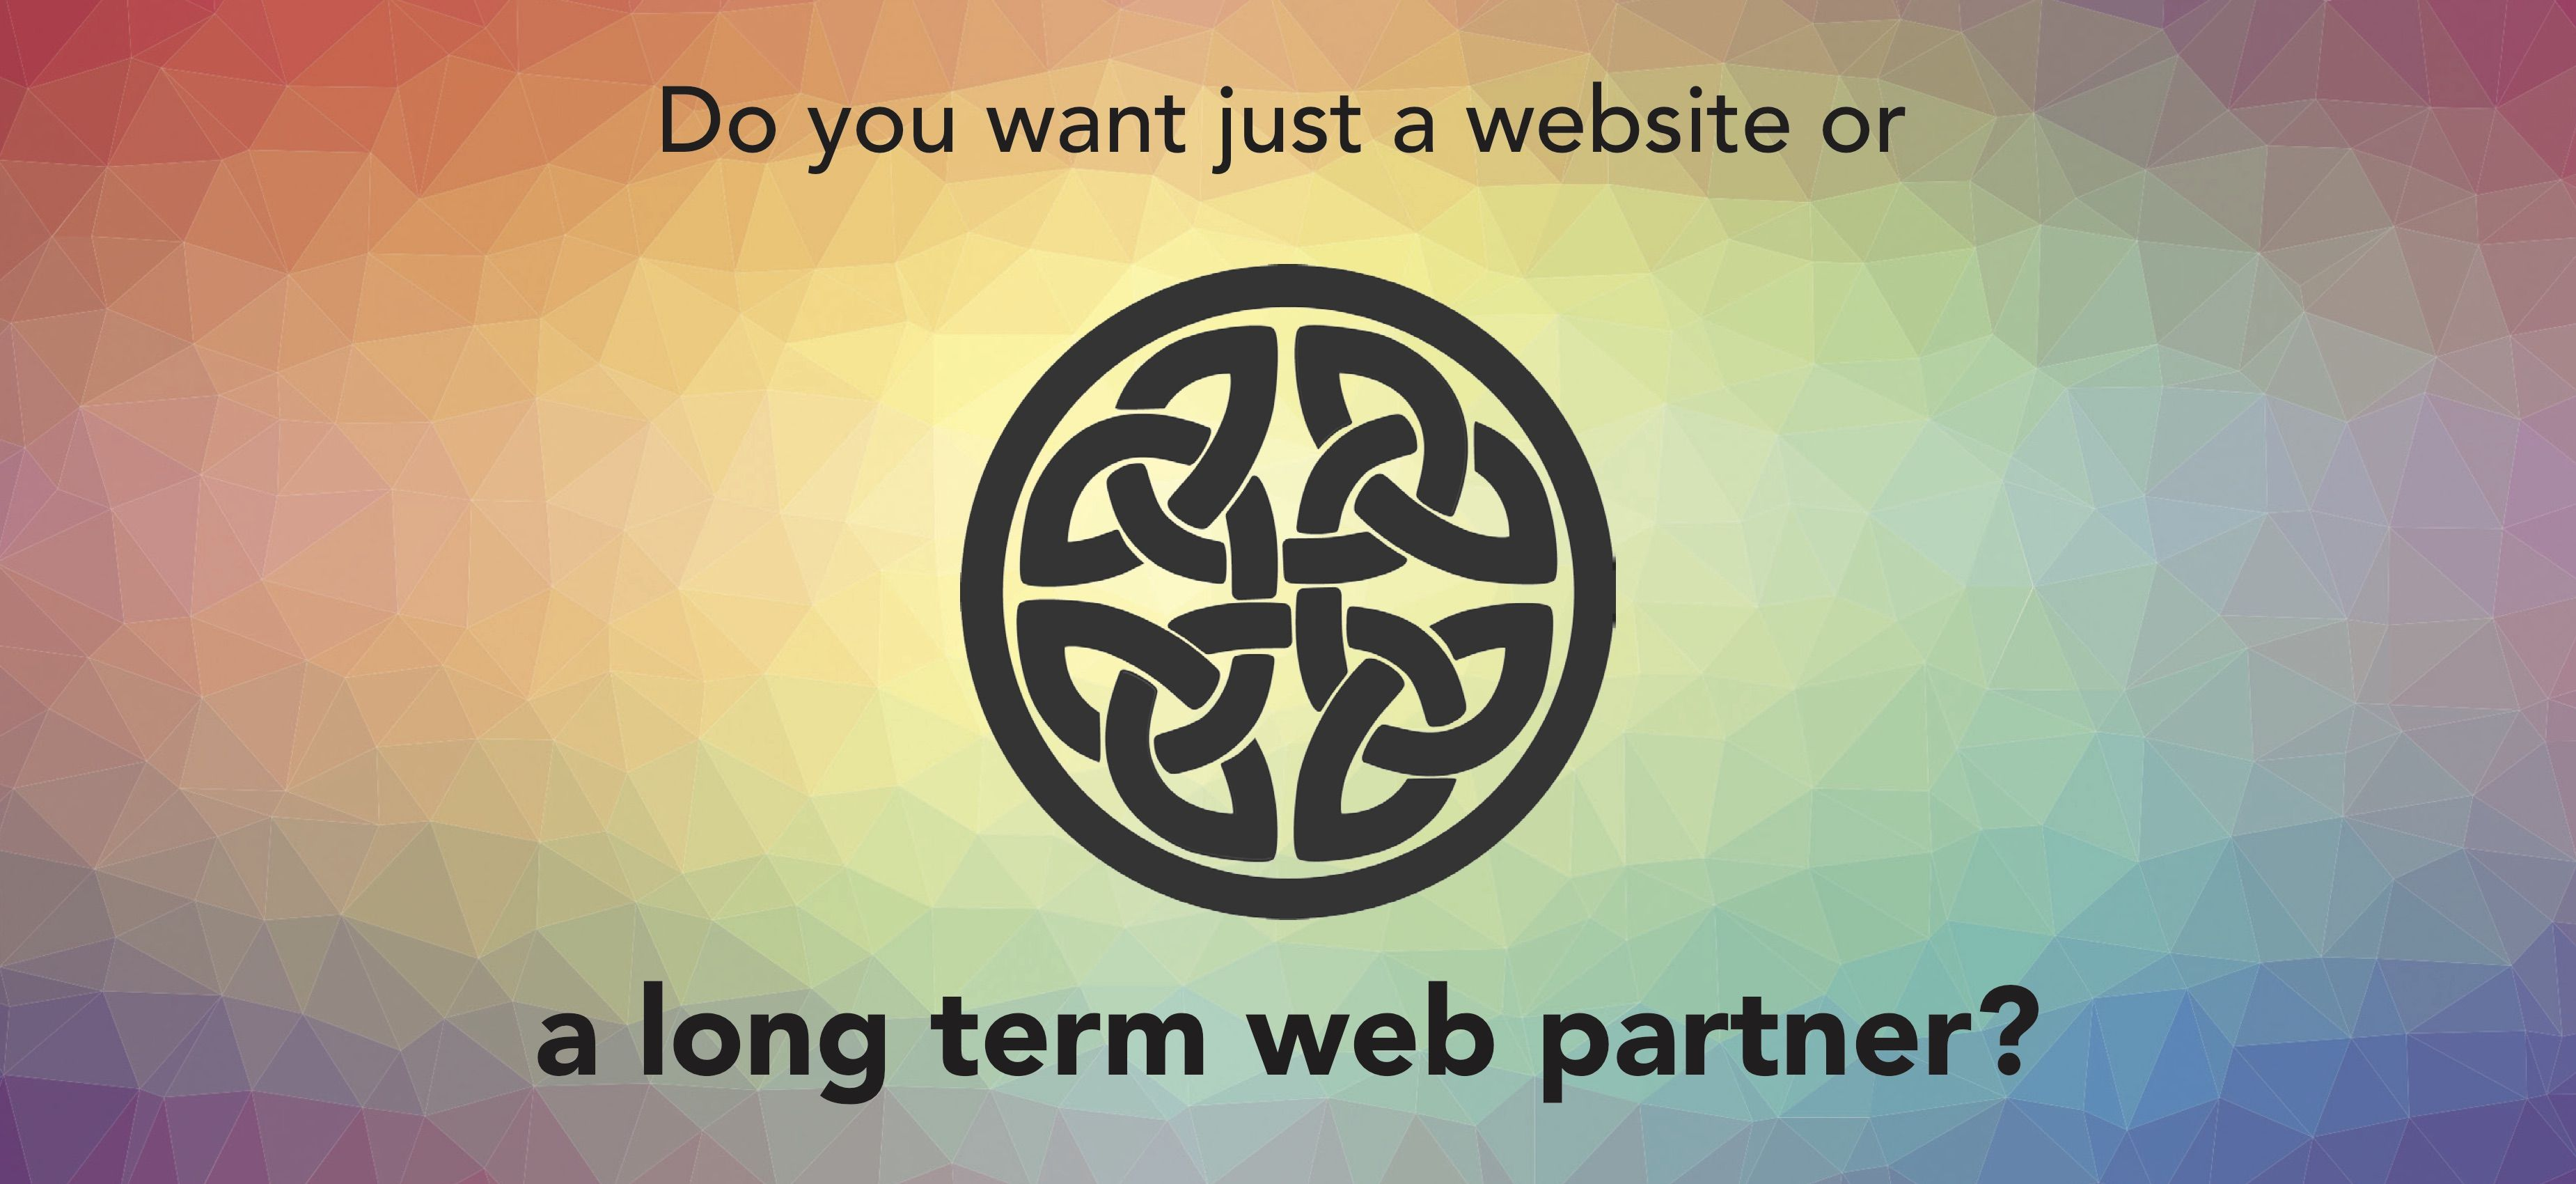 Do you want just a website or a long term web partner?